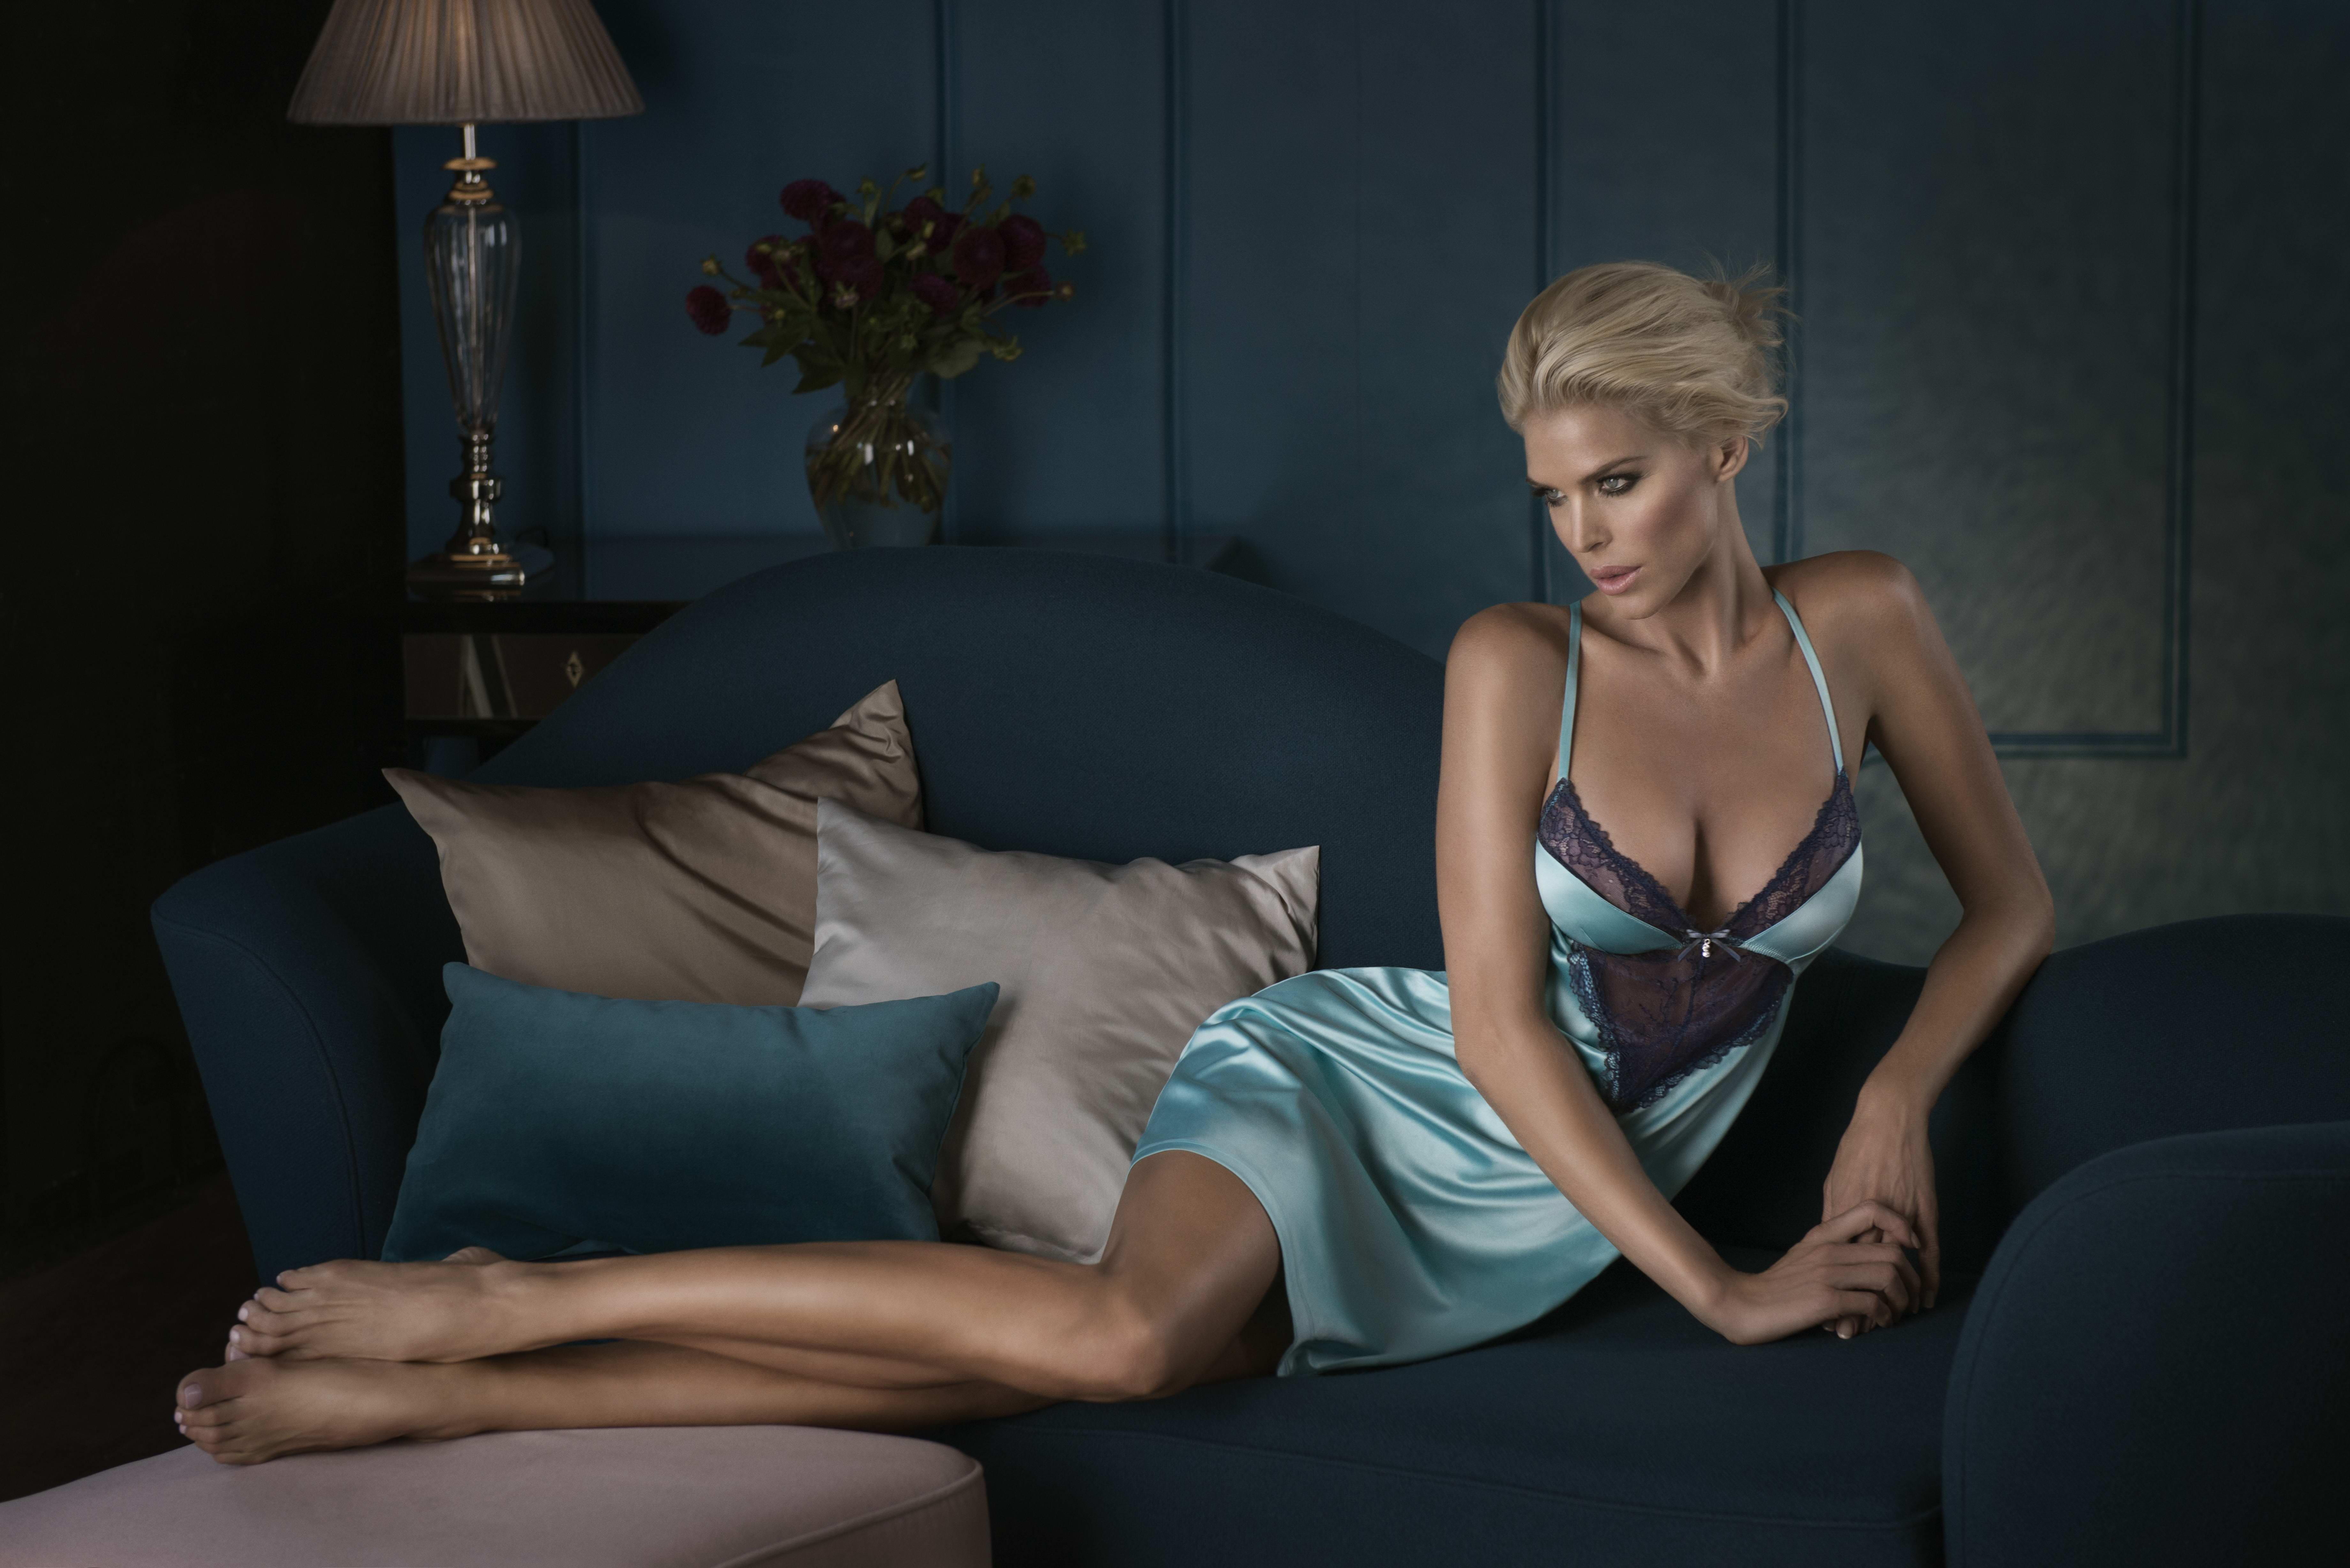 Couch Size Victoria Silvstedt Photo 181 Of 385 Pics Wallpaper